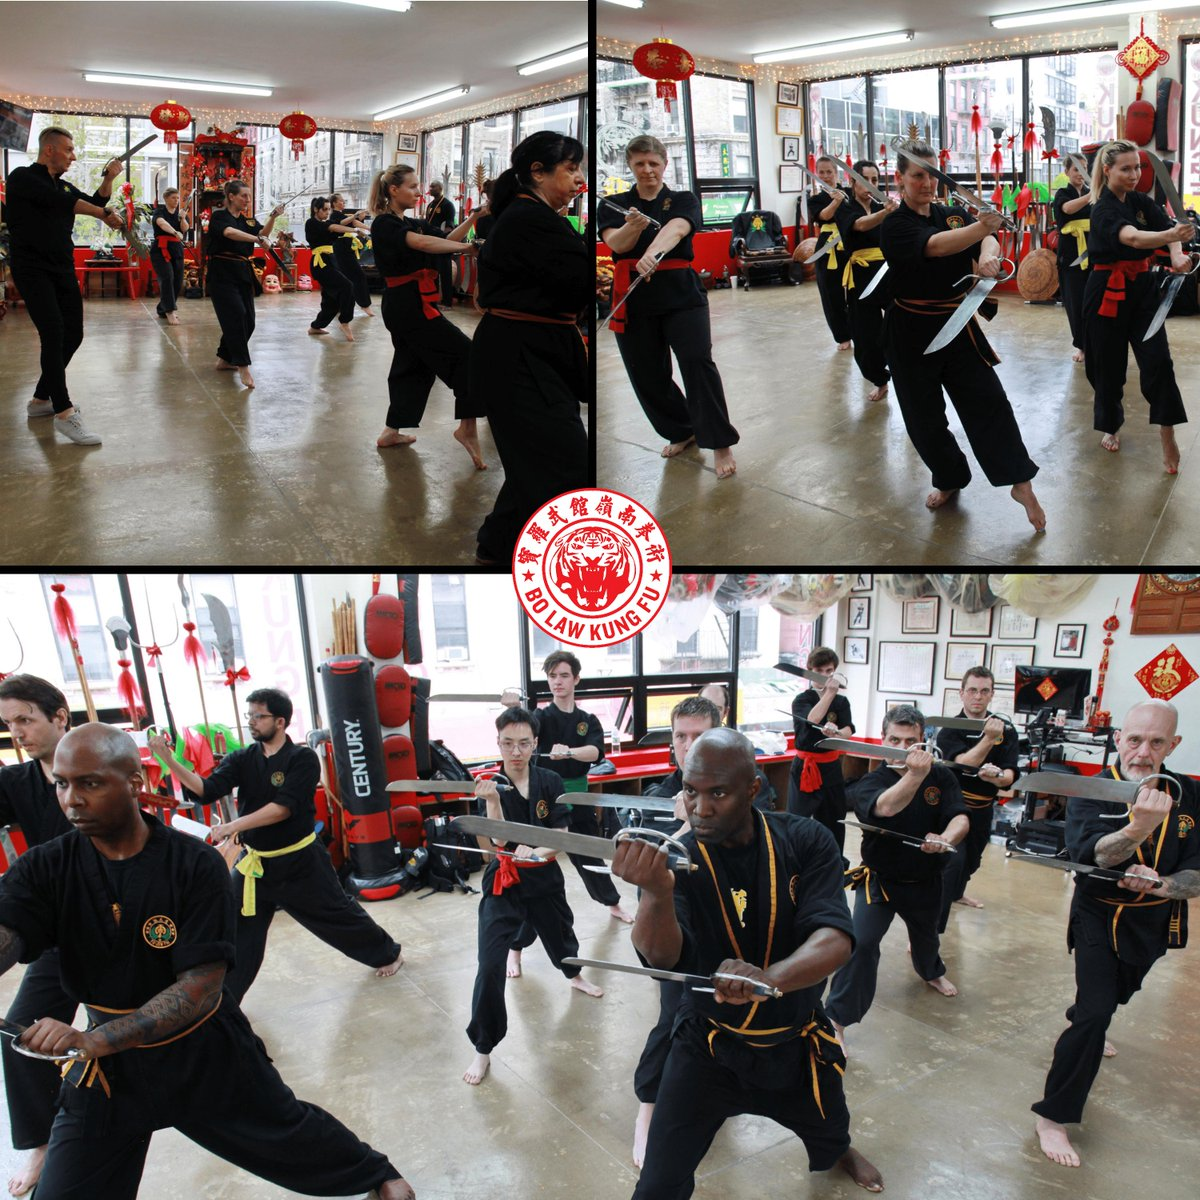 Bo Law Kung Fu On Twitter Find Your Inner Warrior 290